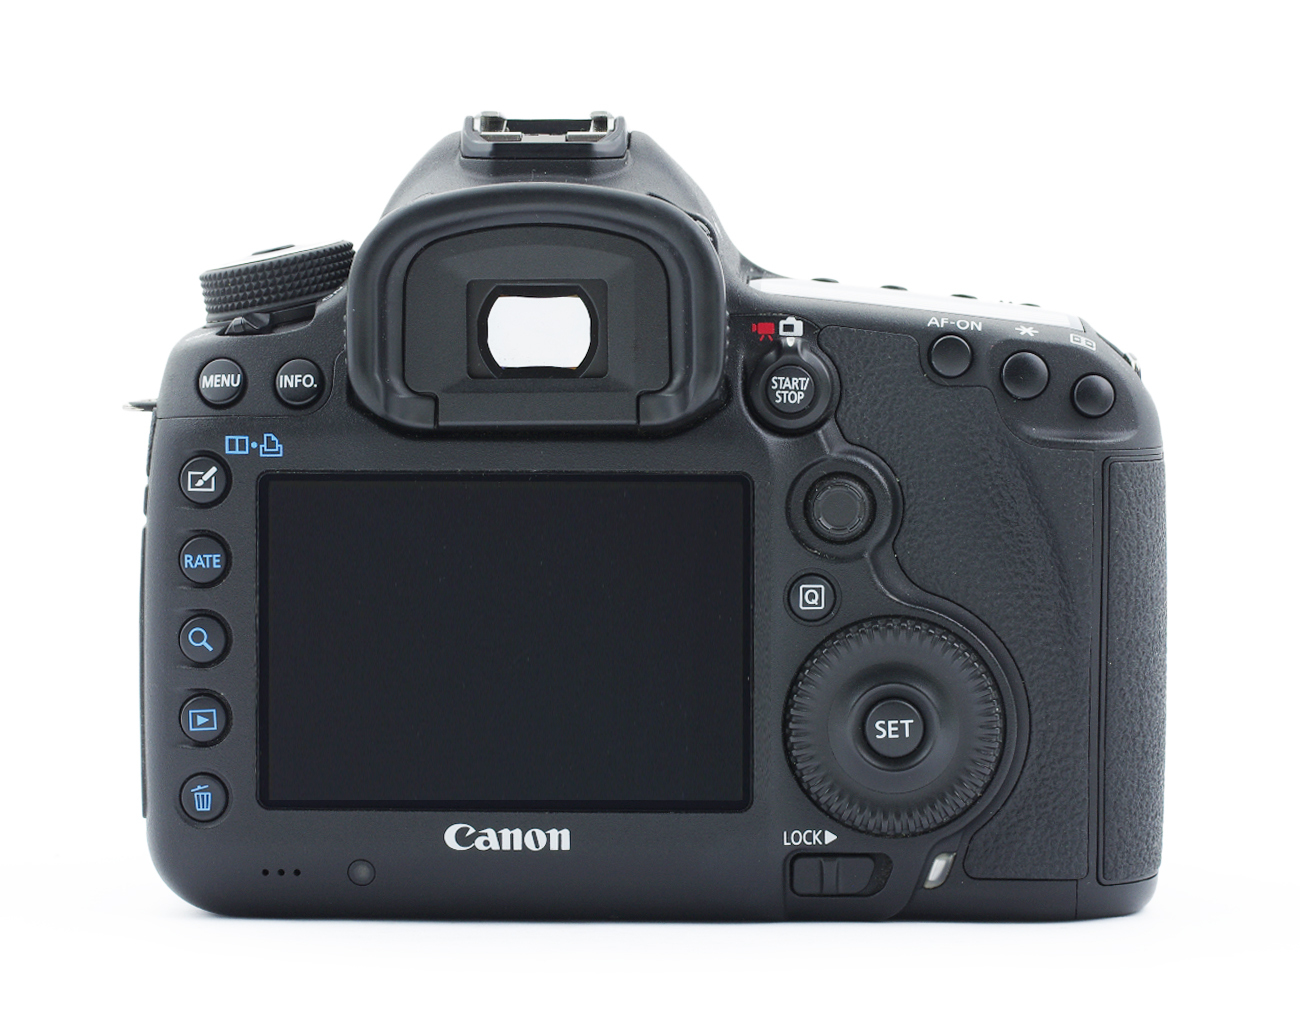 Canon EOS 5D Mark III 22.3MP Digital SLR Camera Body / 27379 SHOT